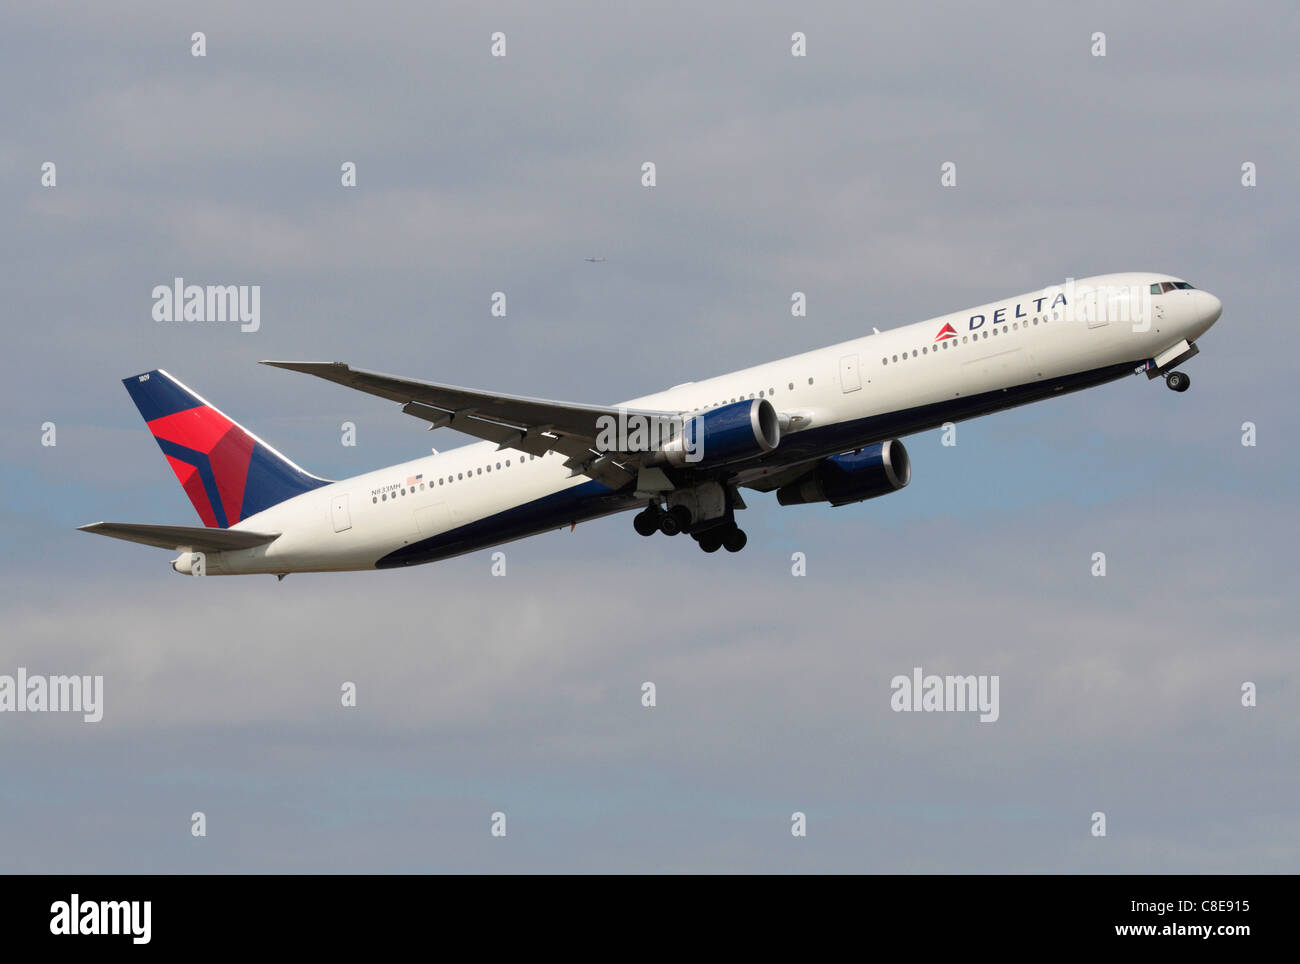 Delta Airlines Jet Stock Photos Amp Delta Airlines Jet Stock